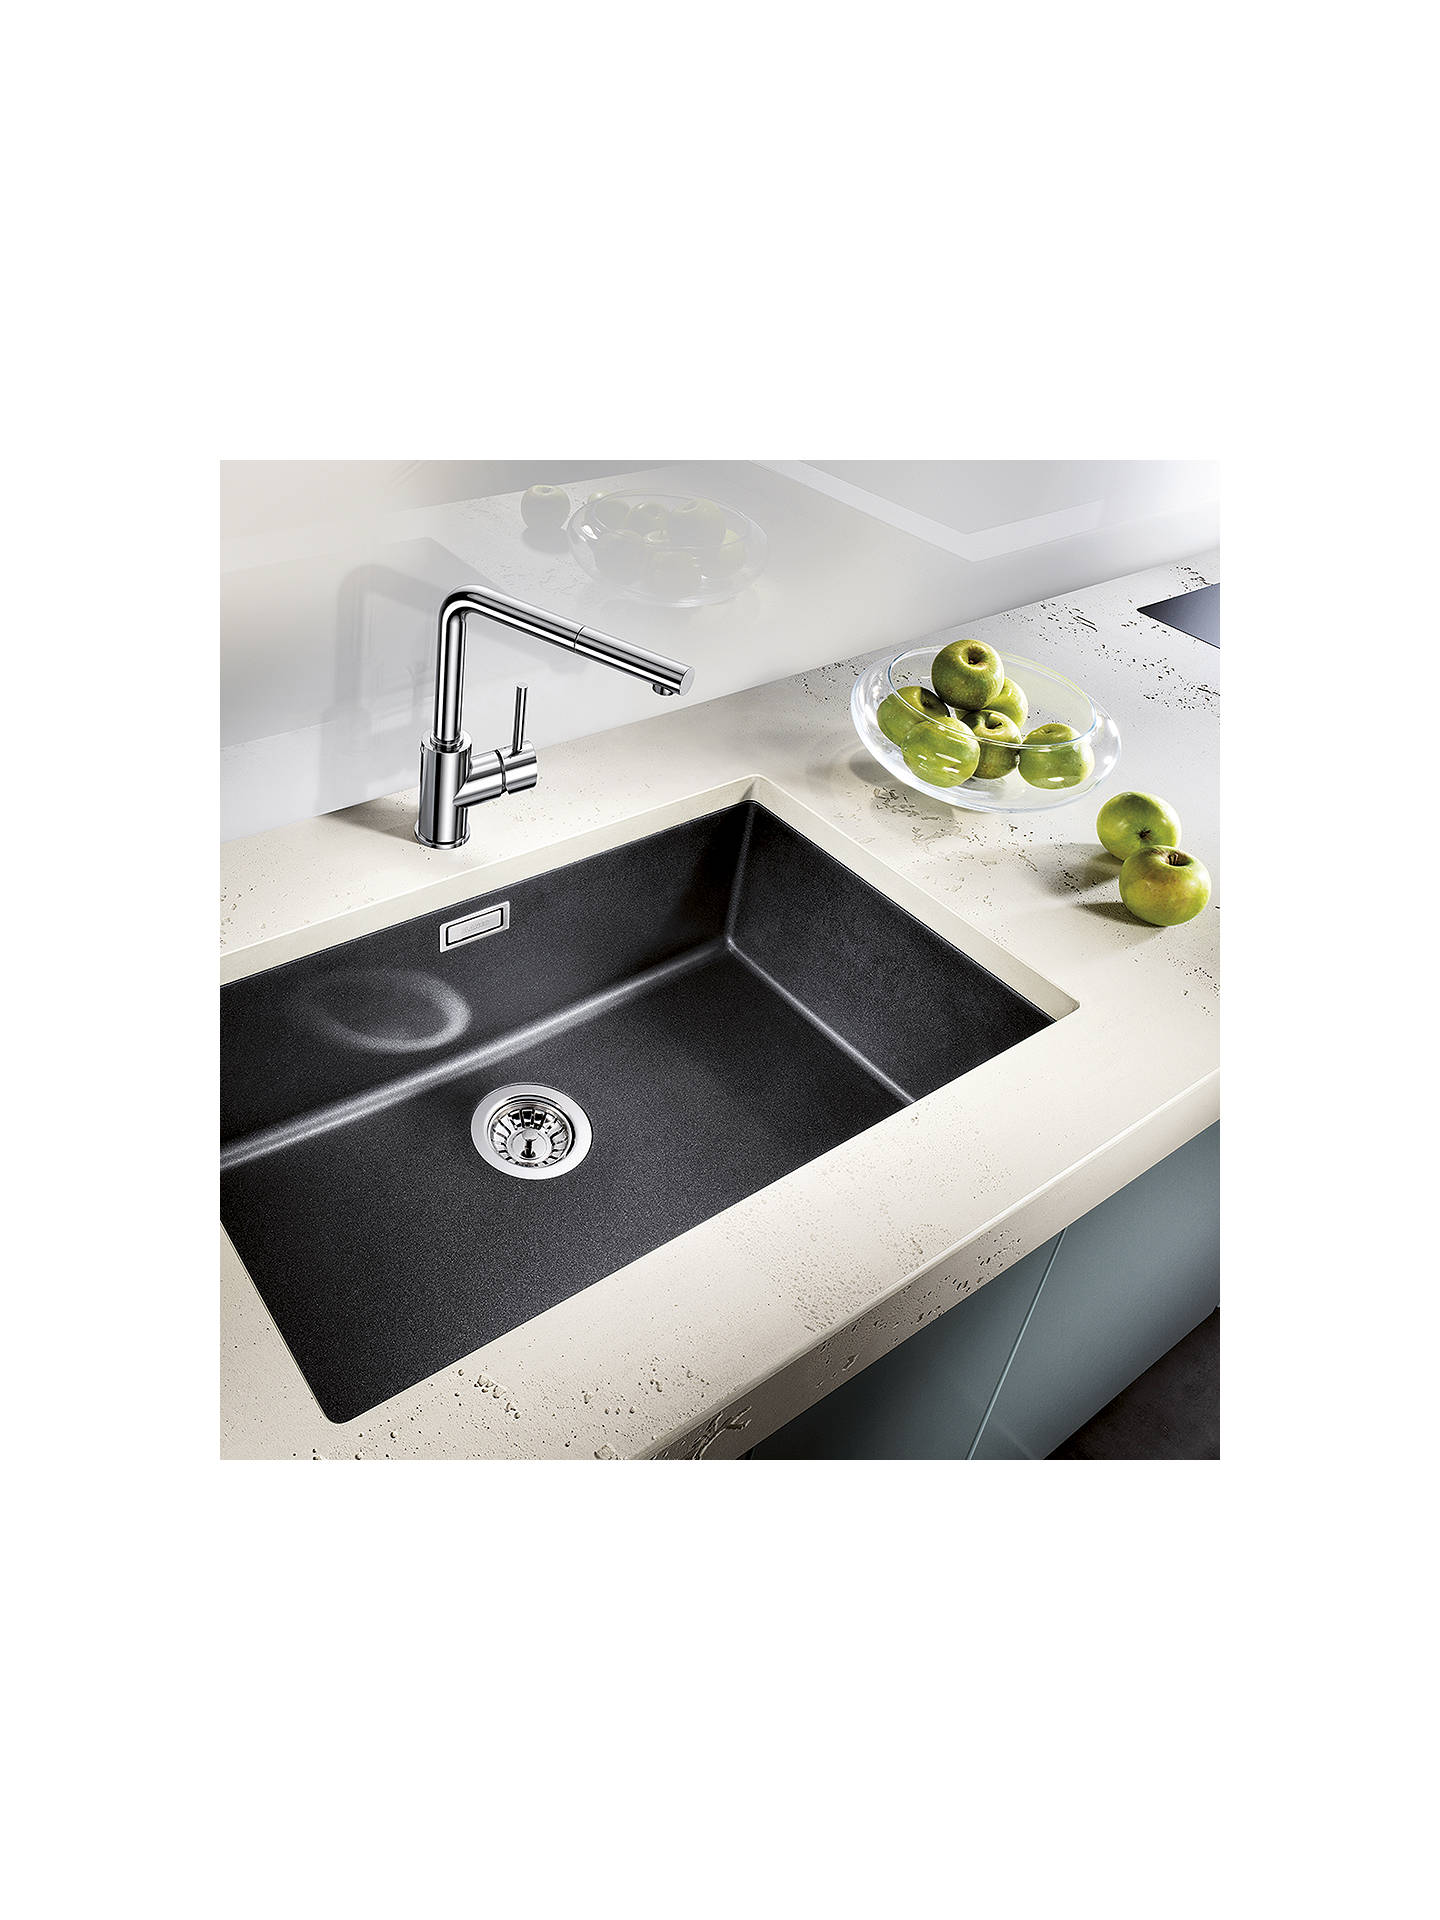 Buy Blanco Subline 700-U Single Bowl Undermounted Composite Granite Kitchen Sink, Anthracite Online at johnlewis.com